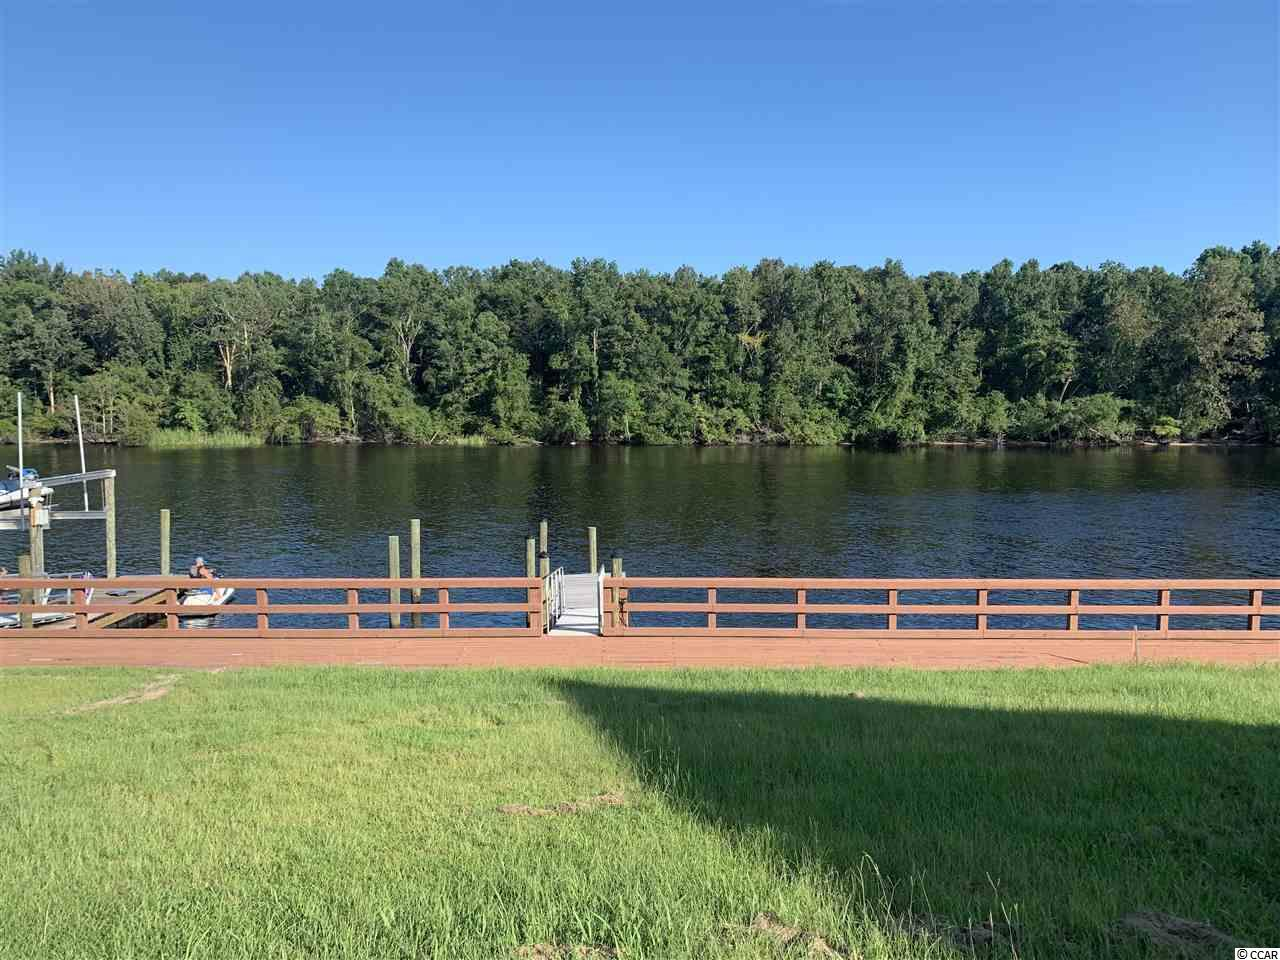 Waterfront with a community Day dock, boat ramp and boat storage. Lot has been dredged and has permit for individual private dock if desired. Spoil Yourself in this Gated Waterfront Community with Deepwater access and enjoy all the  Intracoastal Waterway has to offer... Rare opportunity to find all of this in one place...come live the waterway dream...you deserve it!